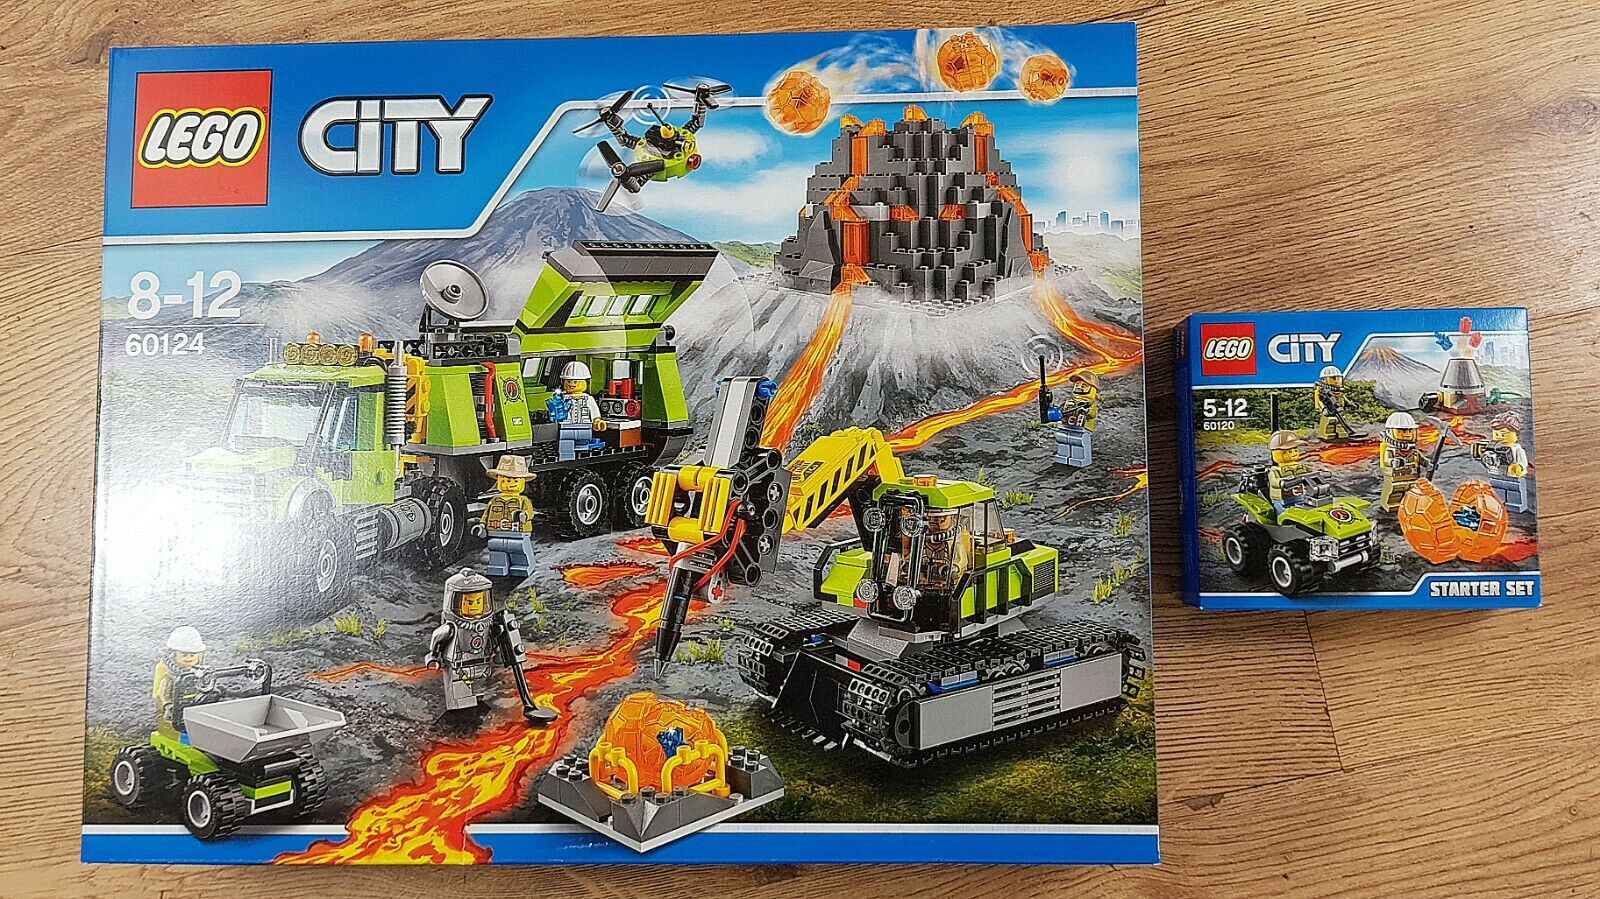 LEGO City 60124 Volcano Exploration Base & 60120 Volcano Stkonster SetNy